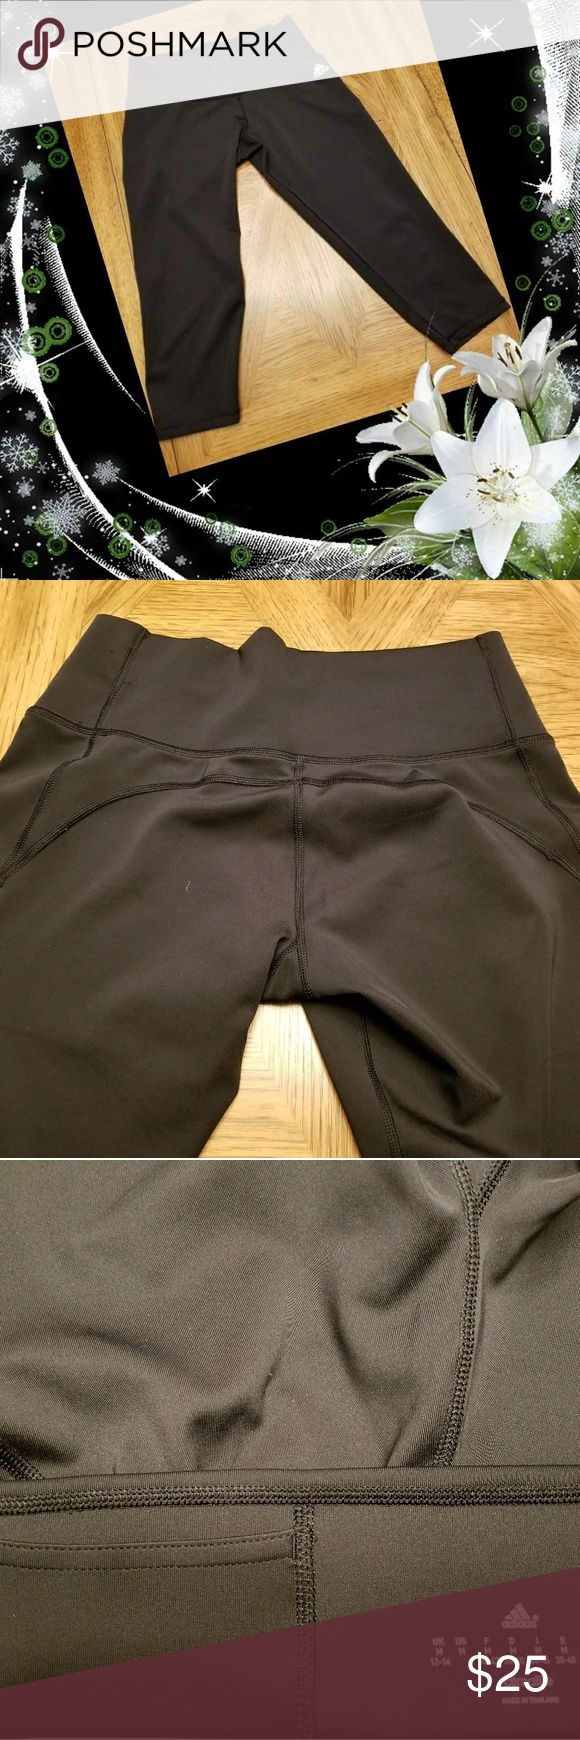 """Women's Black Adidas """"Climate Control"""" Capri👟 Women's Black Adidas """"Climate Control"""" Capri Active Wear. Sleek Inside Pocket!!  Soft/ Wide Elastic Waist.  Durable, Breathable Easy Wash. Front And Back Graphics. UPF 50+ UV PROTECTION Compression Fit70% Recycled Polyester / 19% Polyester / 11% Elastane Interlock. Climalite® Fabric Sweeps Sweat Away  From Your Skin. Made In Thailand. I Will Ship Same Day Or Next Business Day📮📦📬 adidas Pants Track Pants & Joggers"""